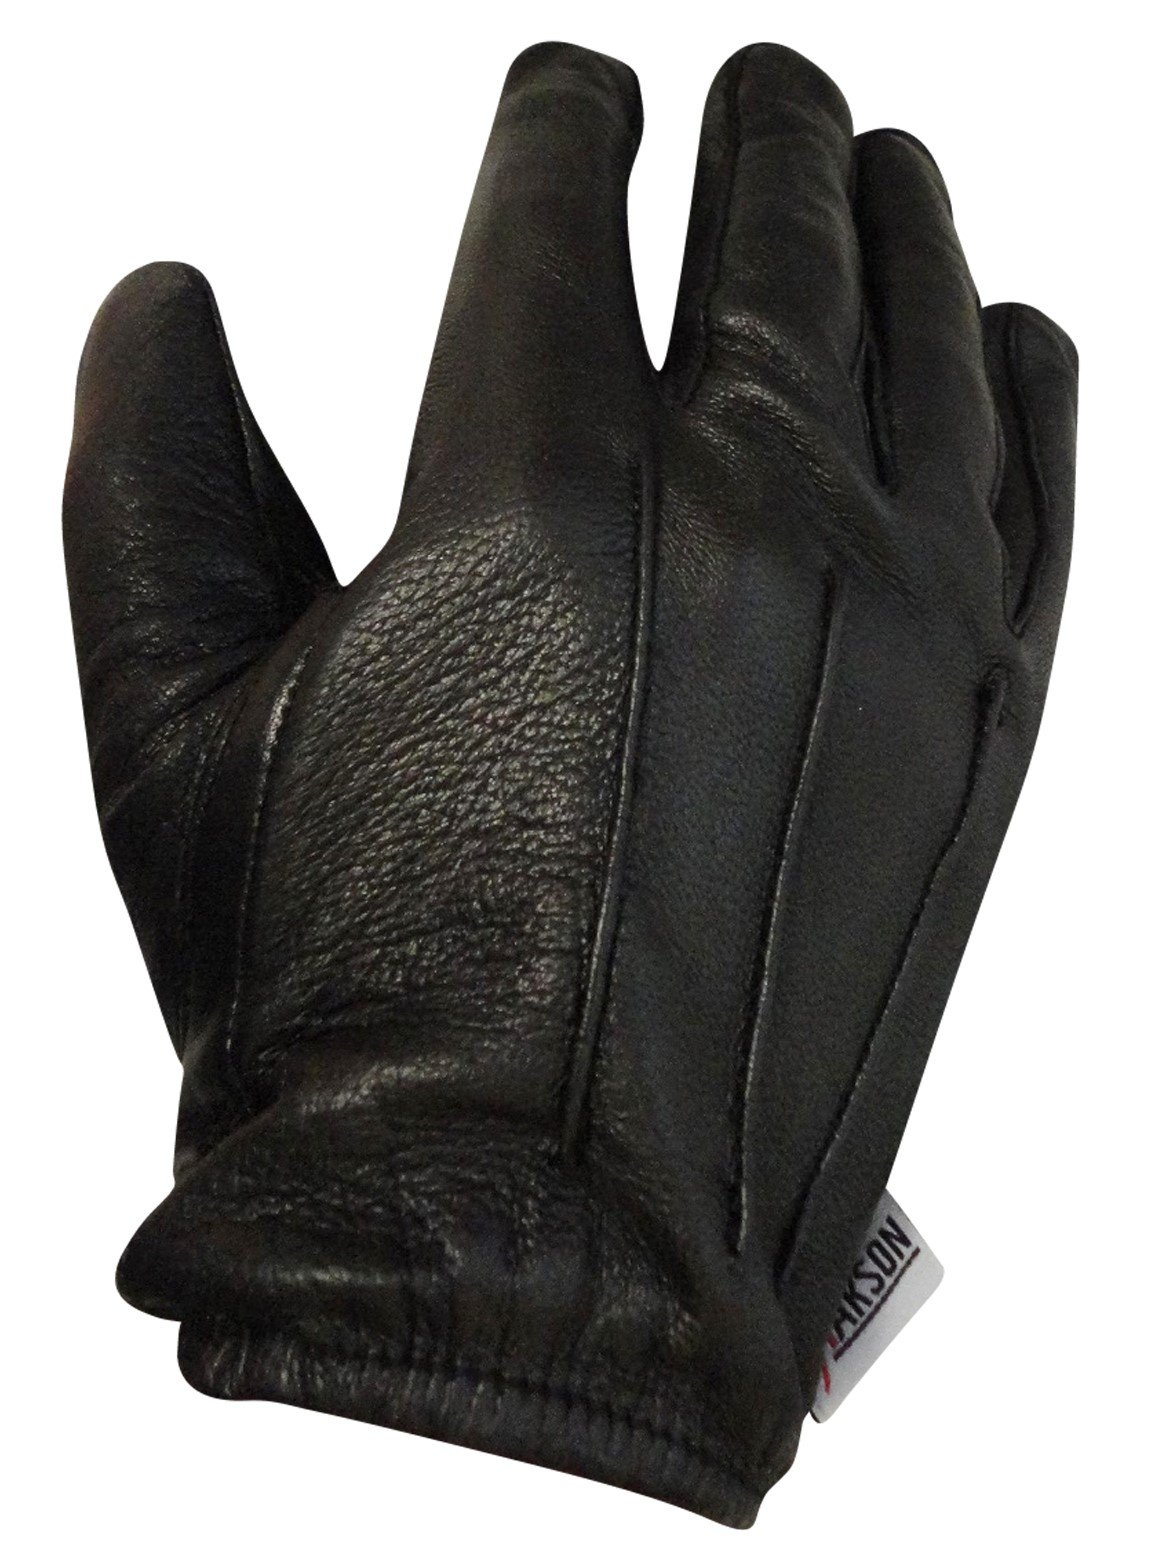 White Leather Police Driving Small Gloves